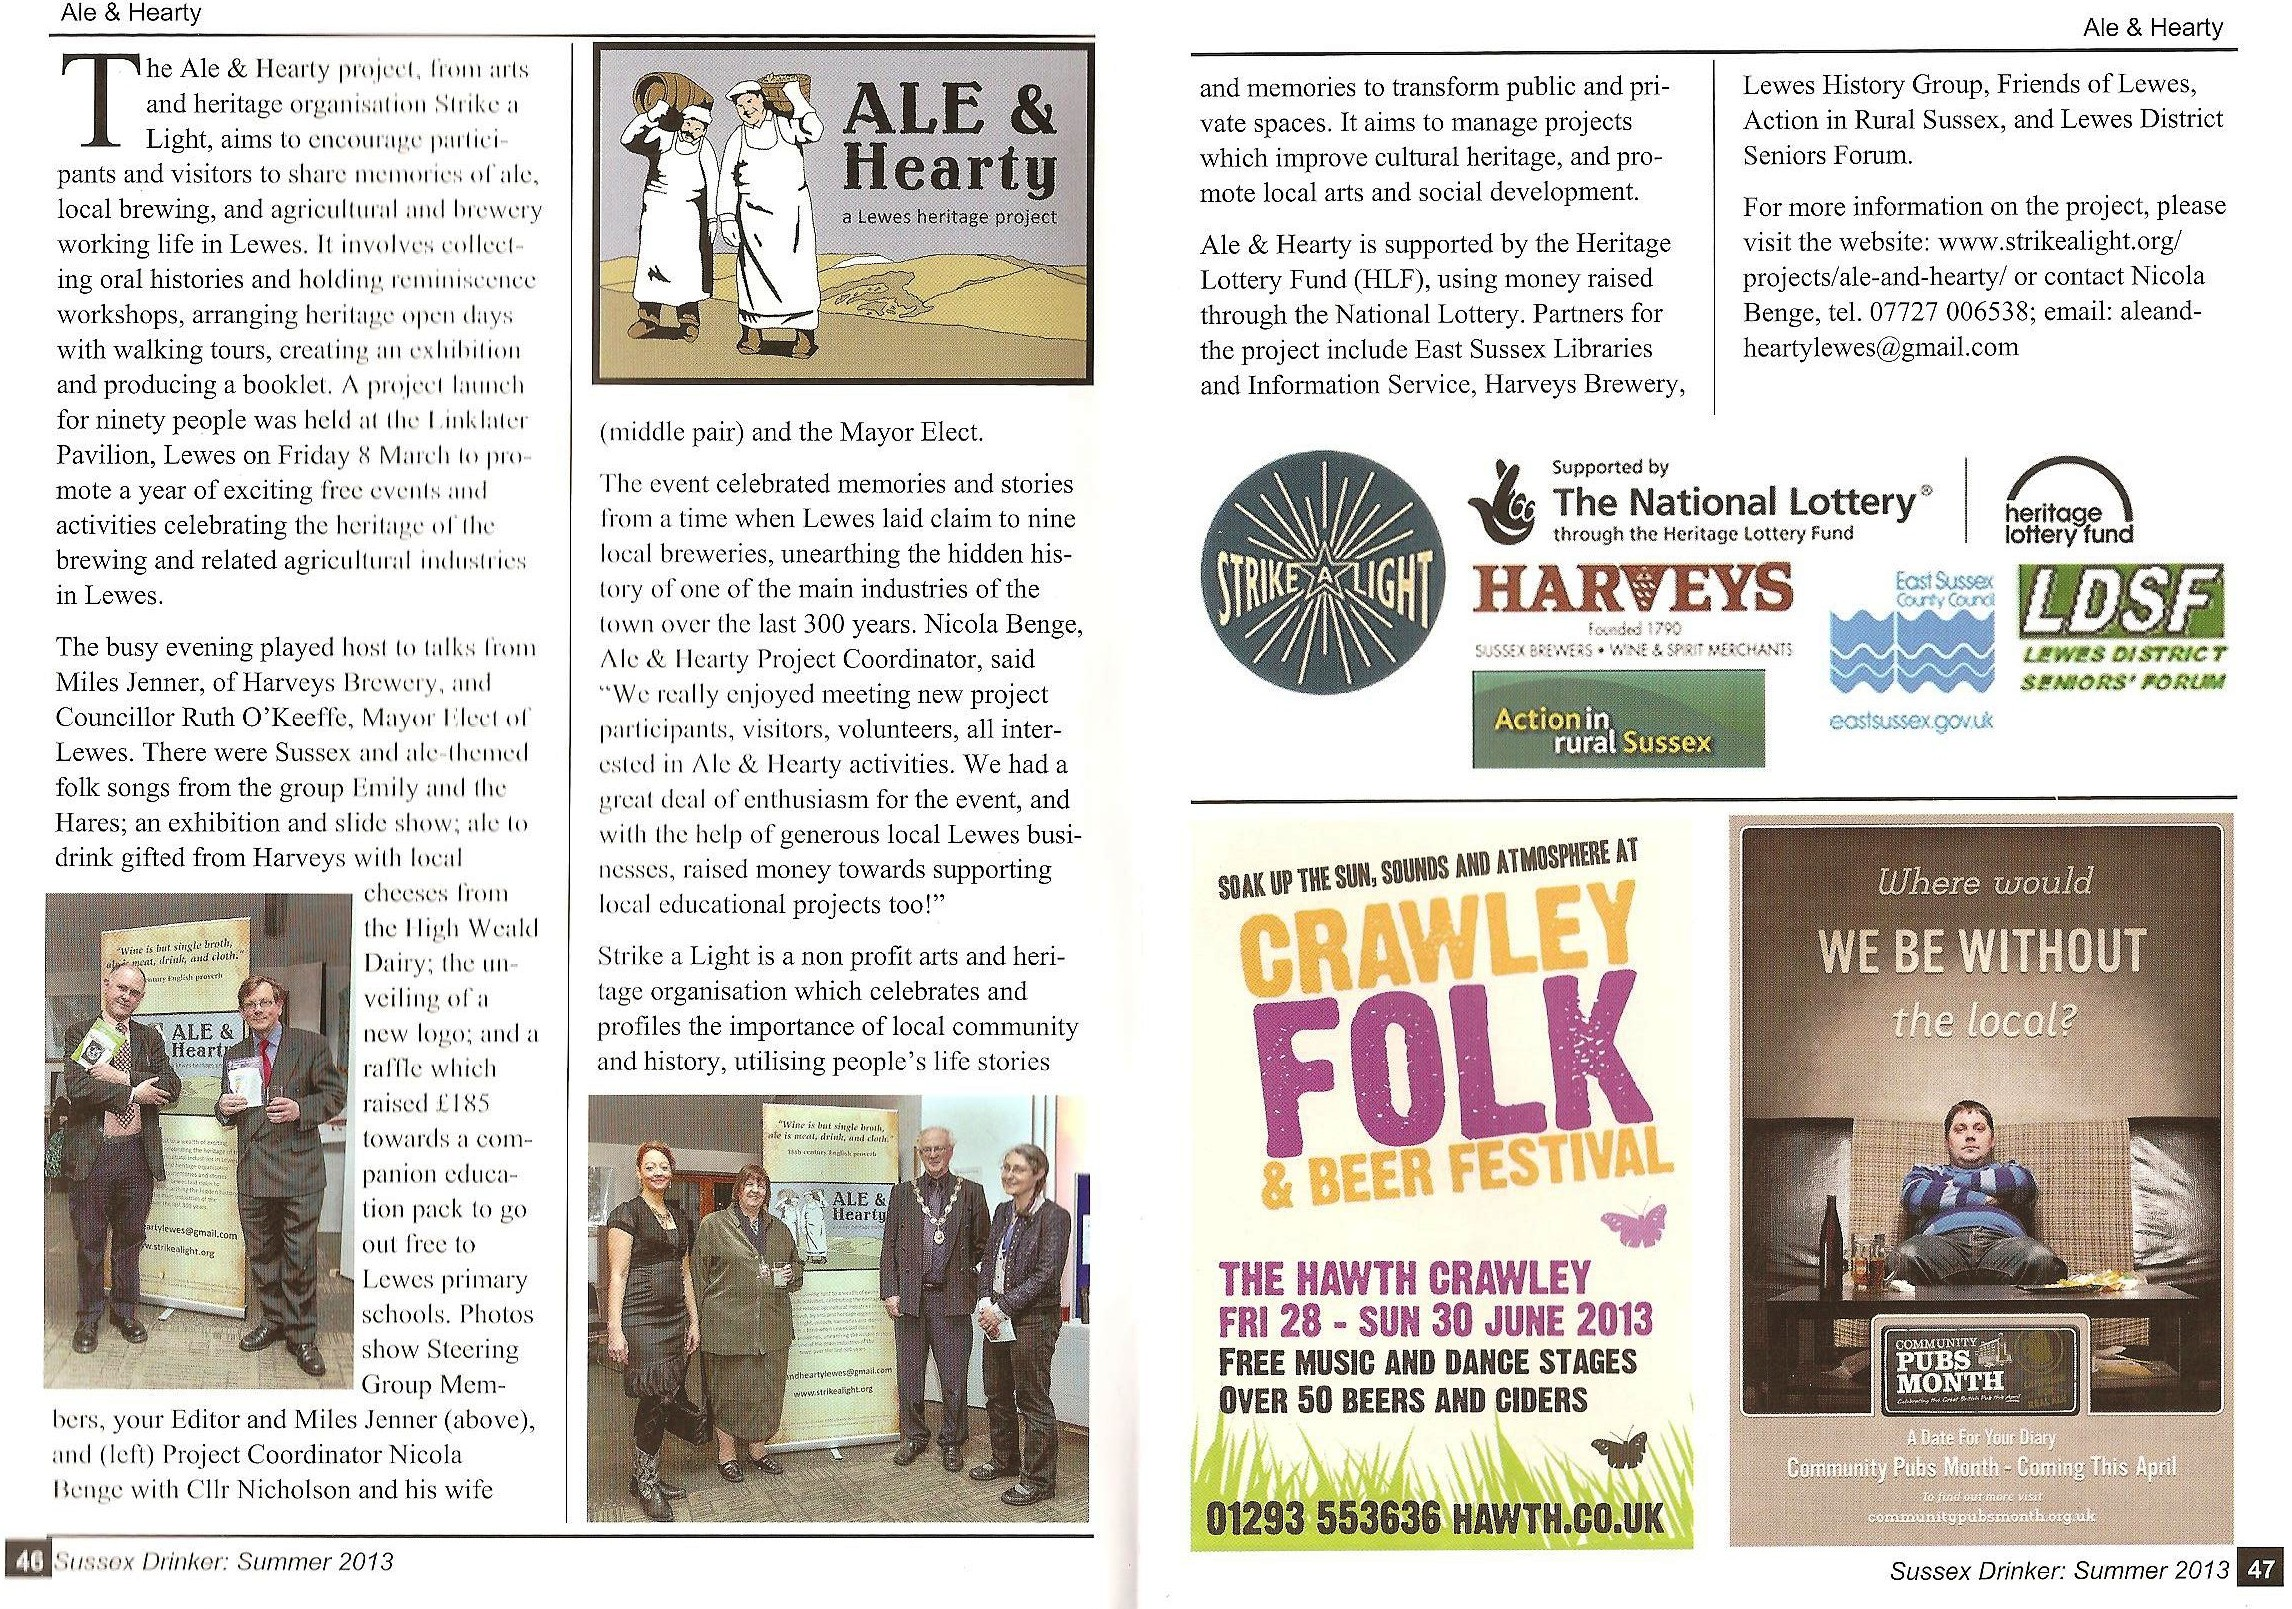 Ale and Hearty article in Sussex Drinker